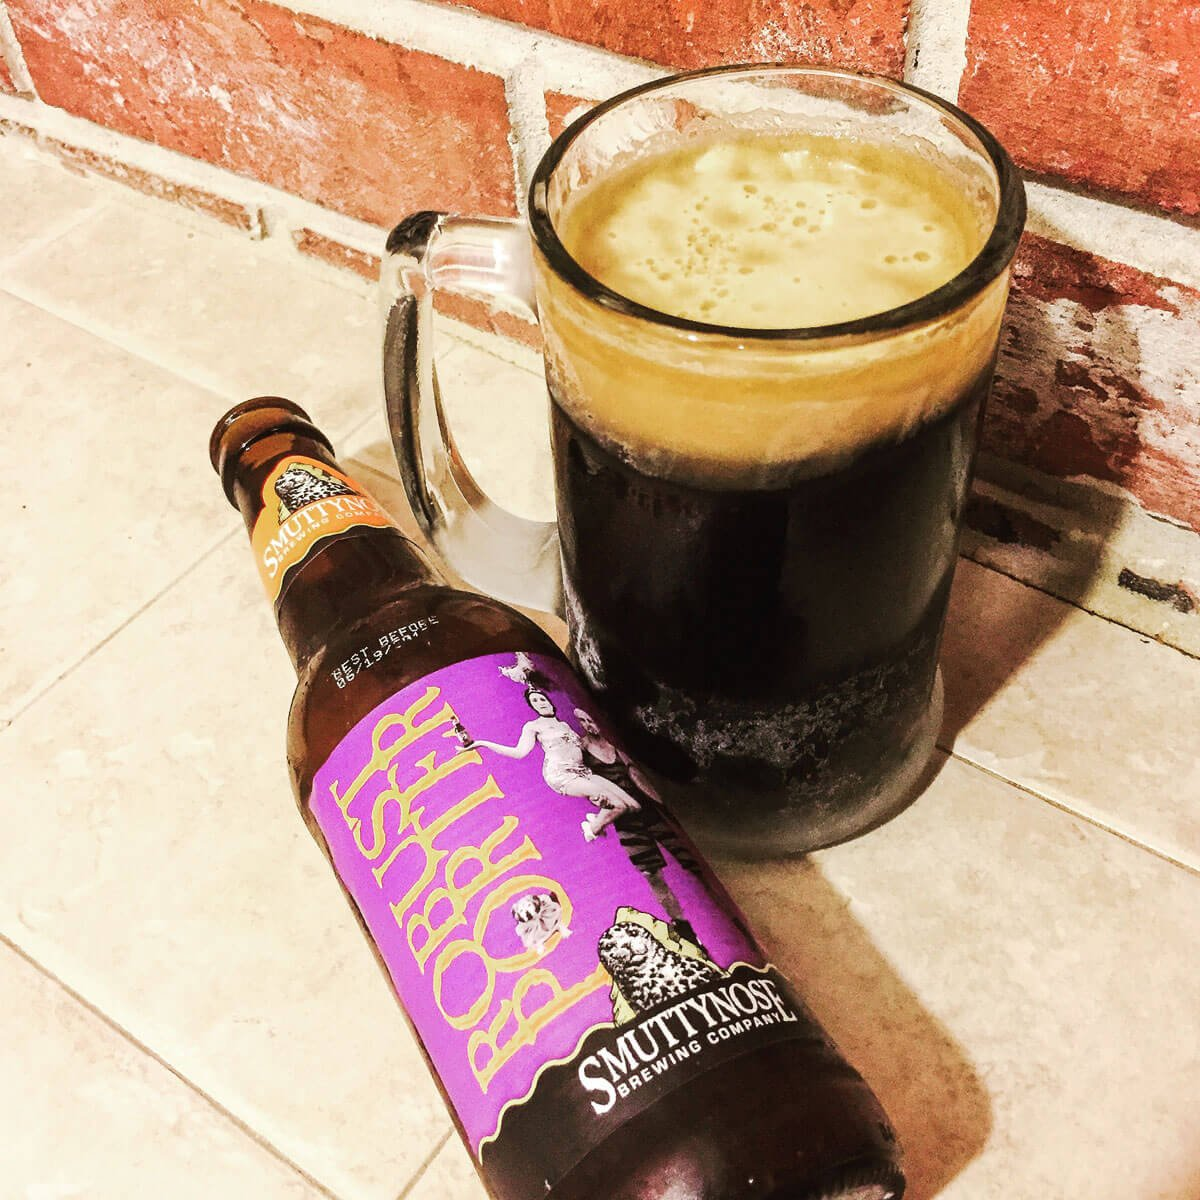 Robust Porter is an American Porter by Smuttynose Brewing Company that blends coffee grounds, roast malt, and floral hops with dark chocolate and caramel.